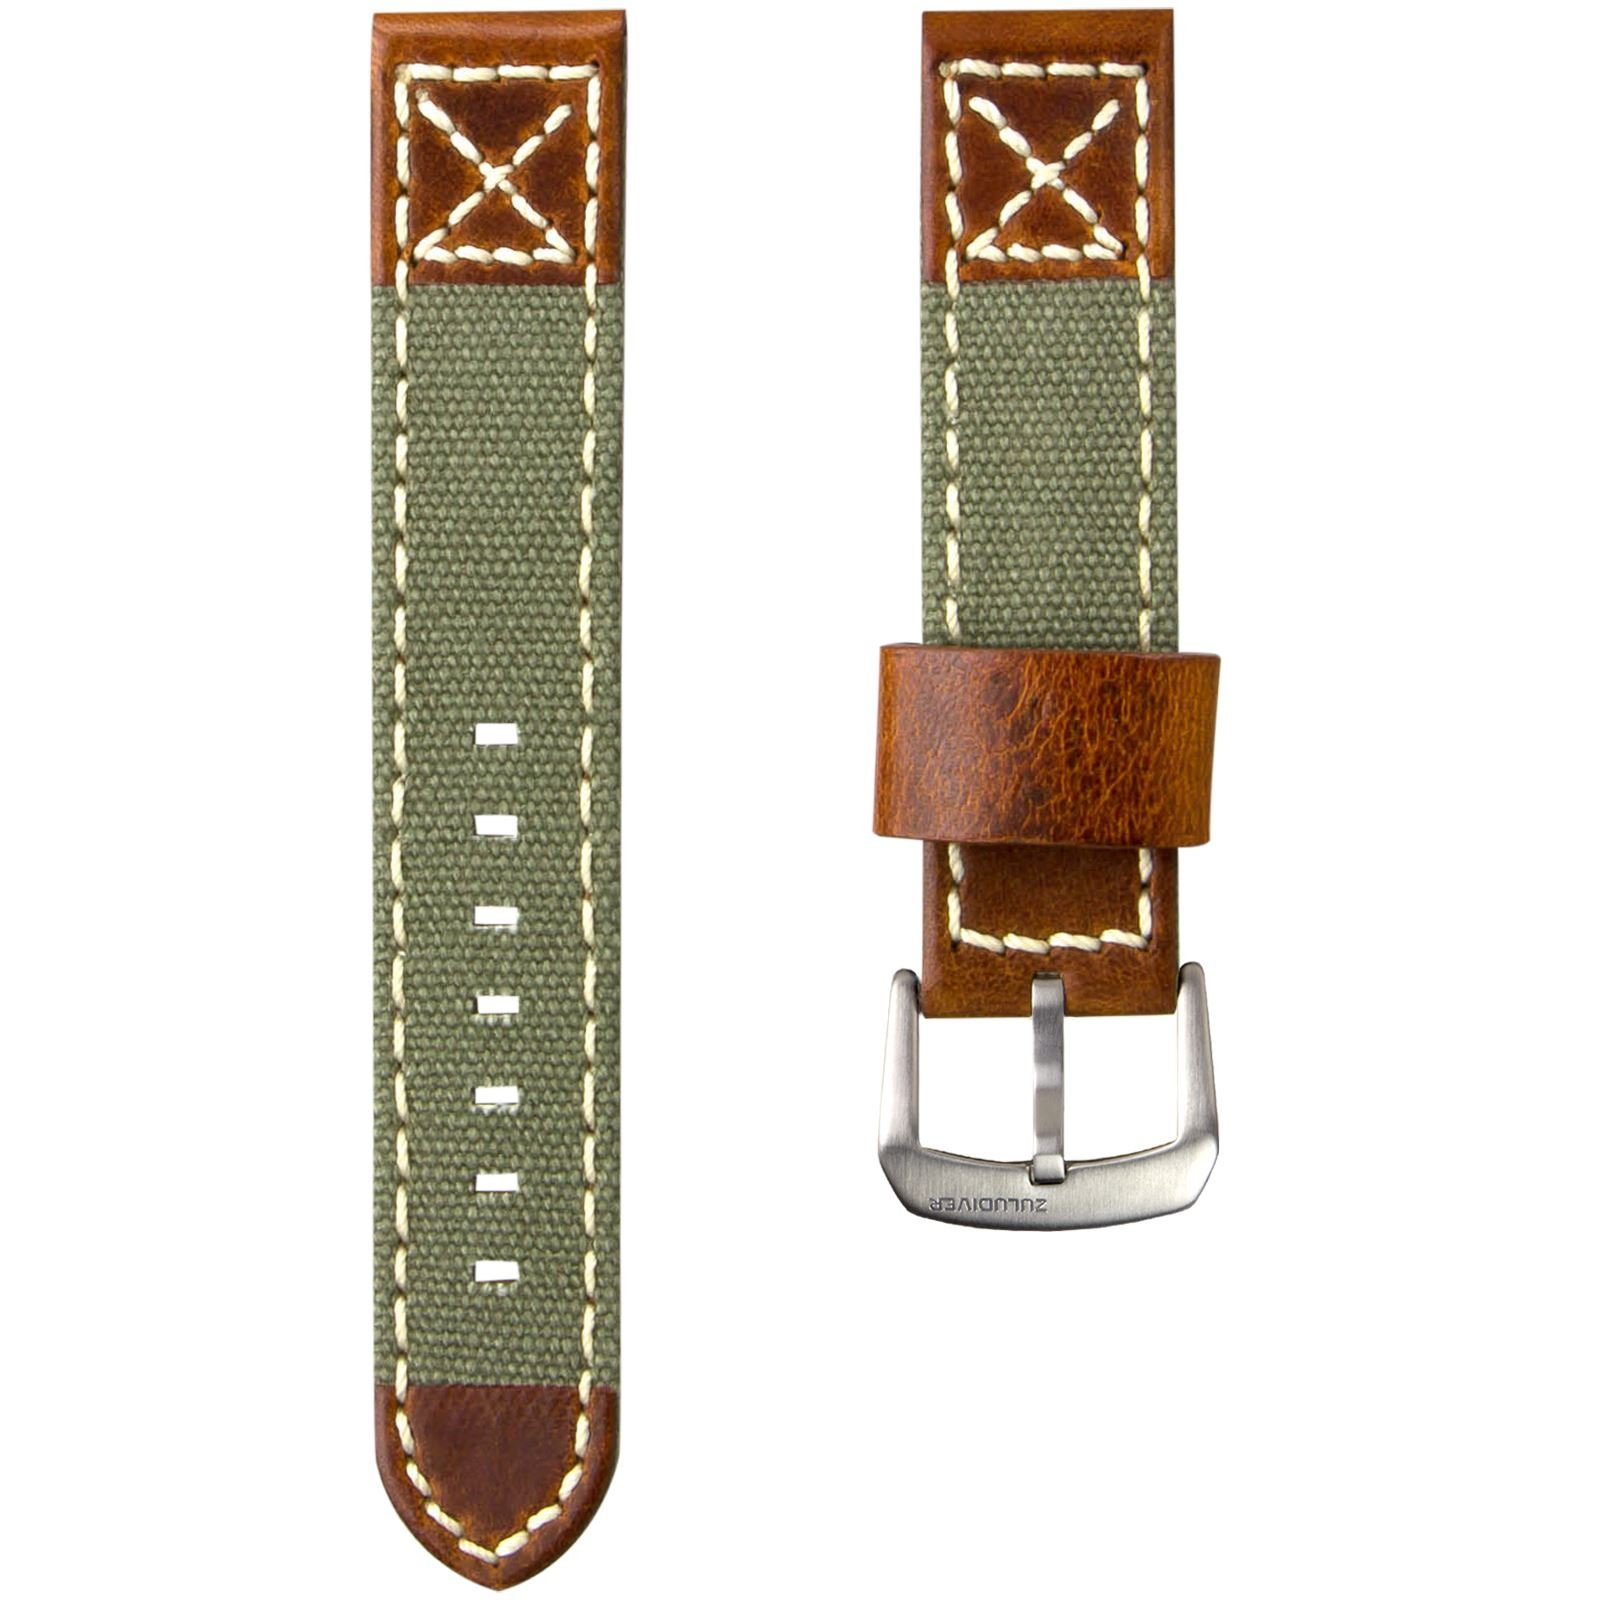 ZULUDIVER Canvas & Italian Leather Watch Strap, Army Green & Vintage Brown, 20mm